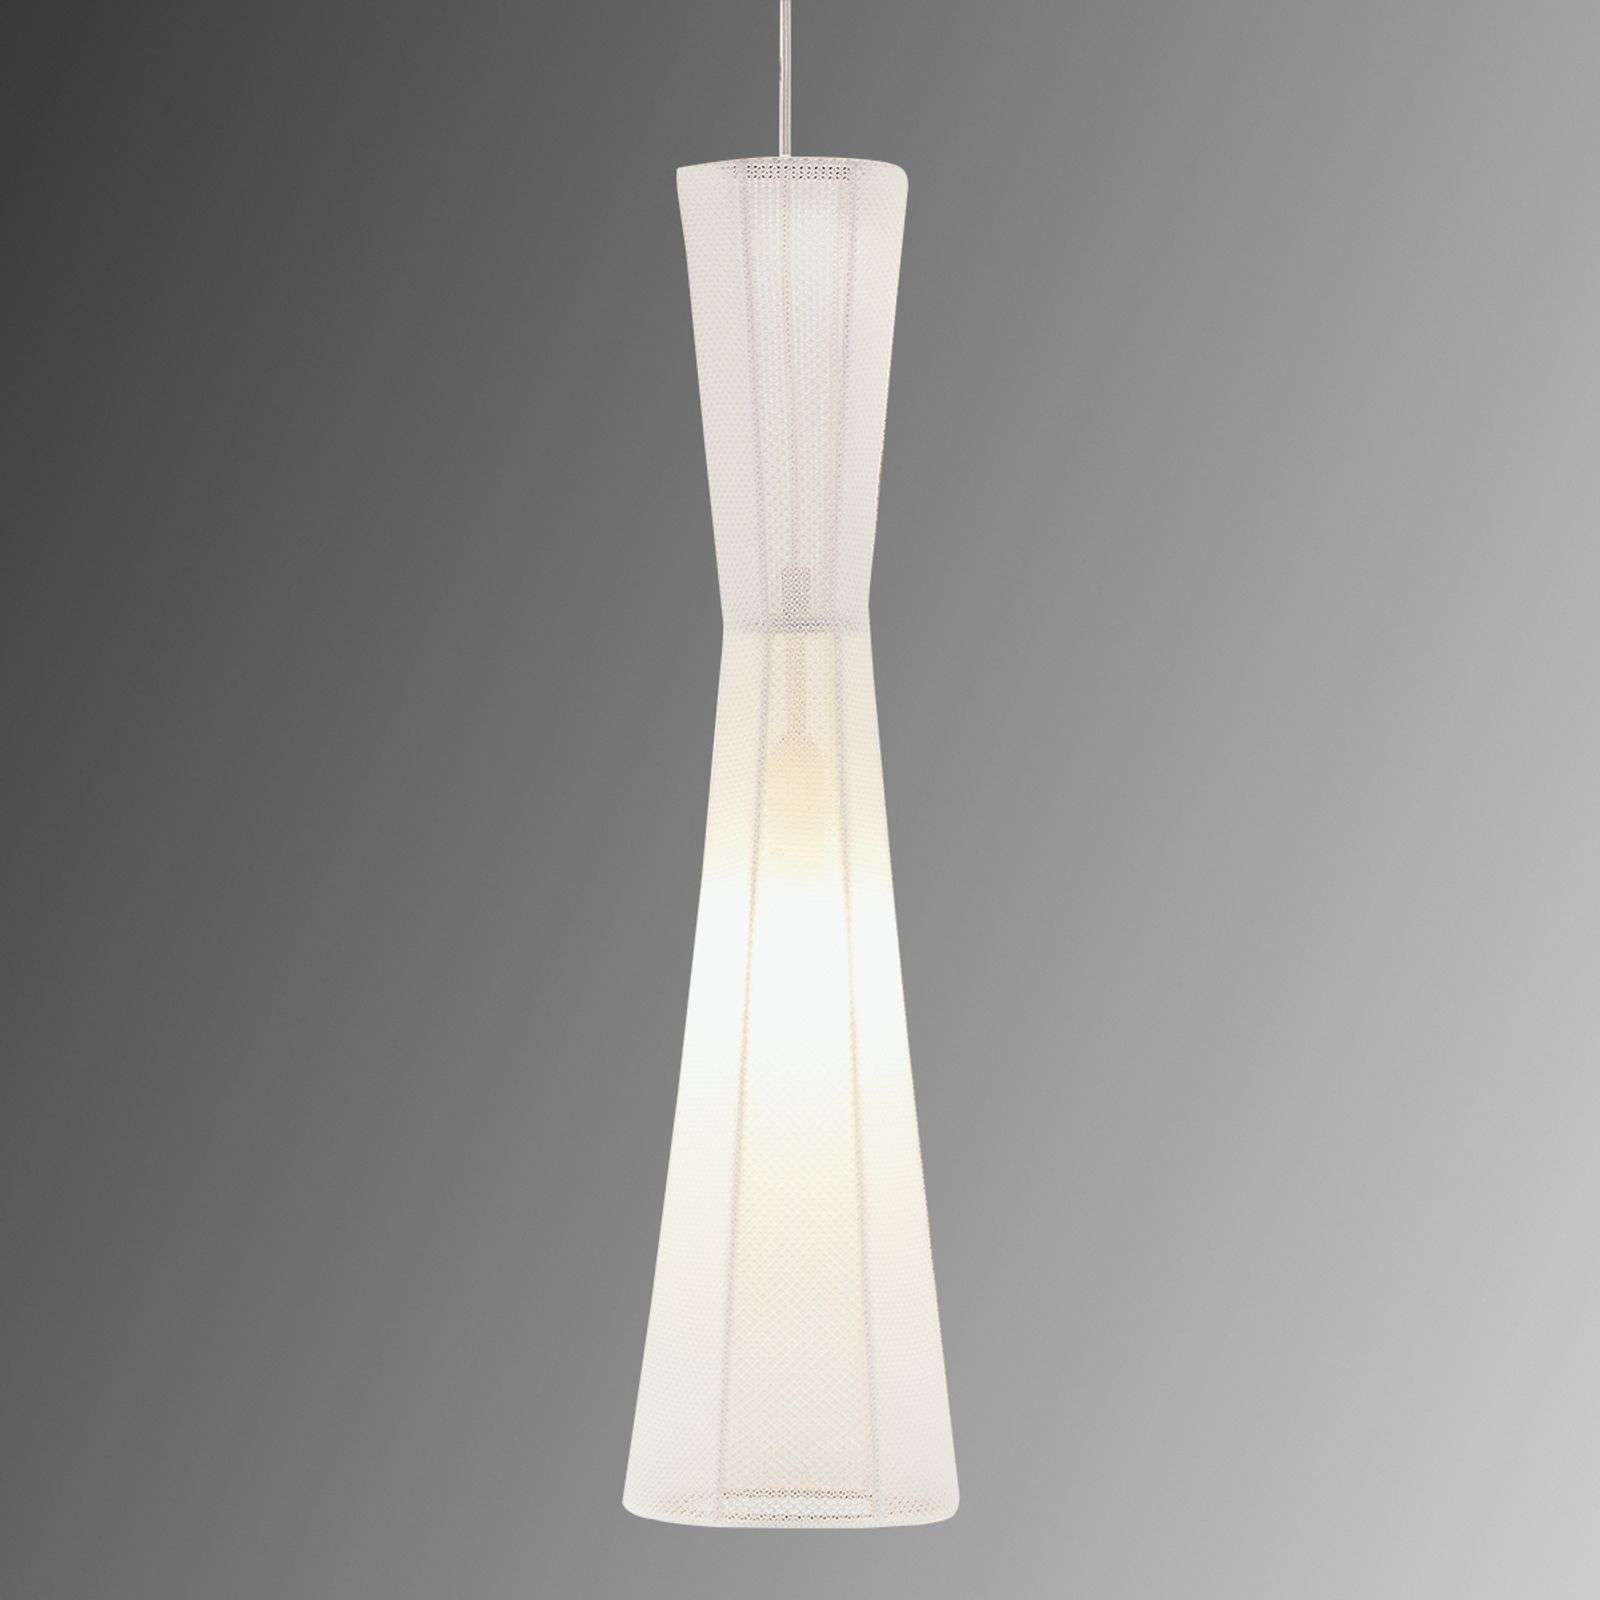 Suspension LED Felice, 60 cm, blanche